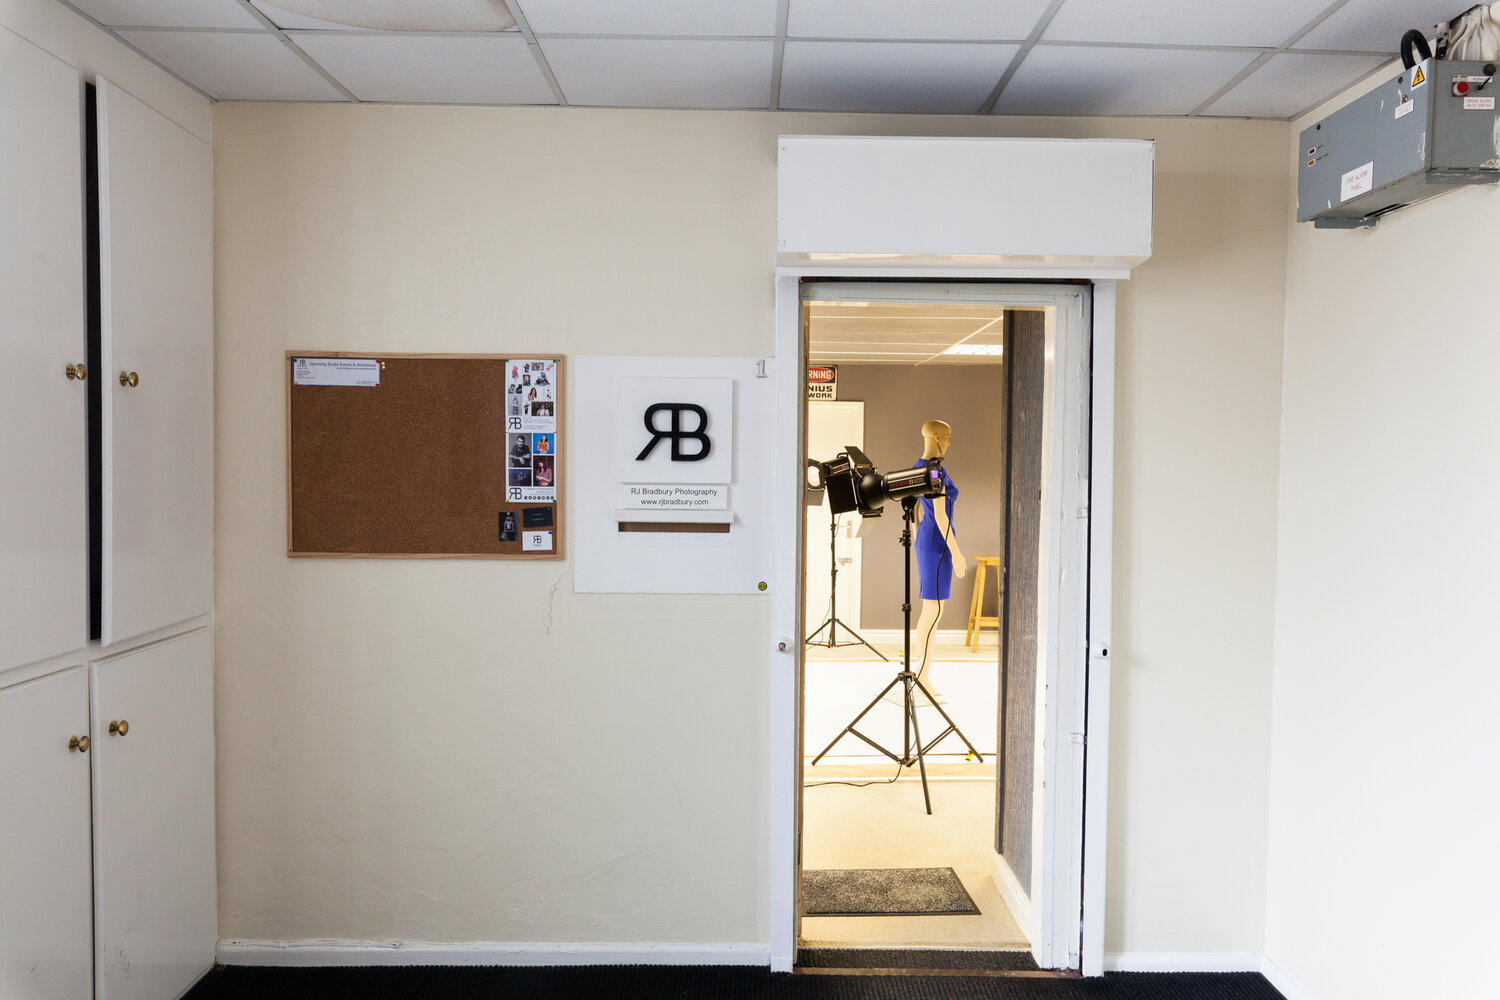 Studio Hire Stockport - Hire a well equipped studio for your next shoot.  Basic & Assisted Hire available.